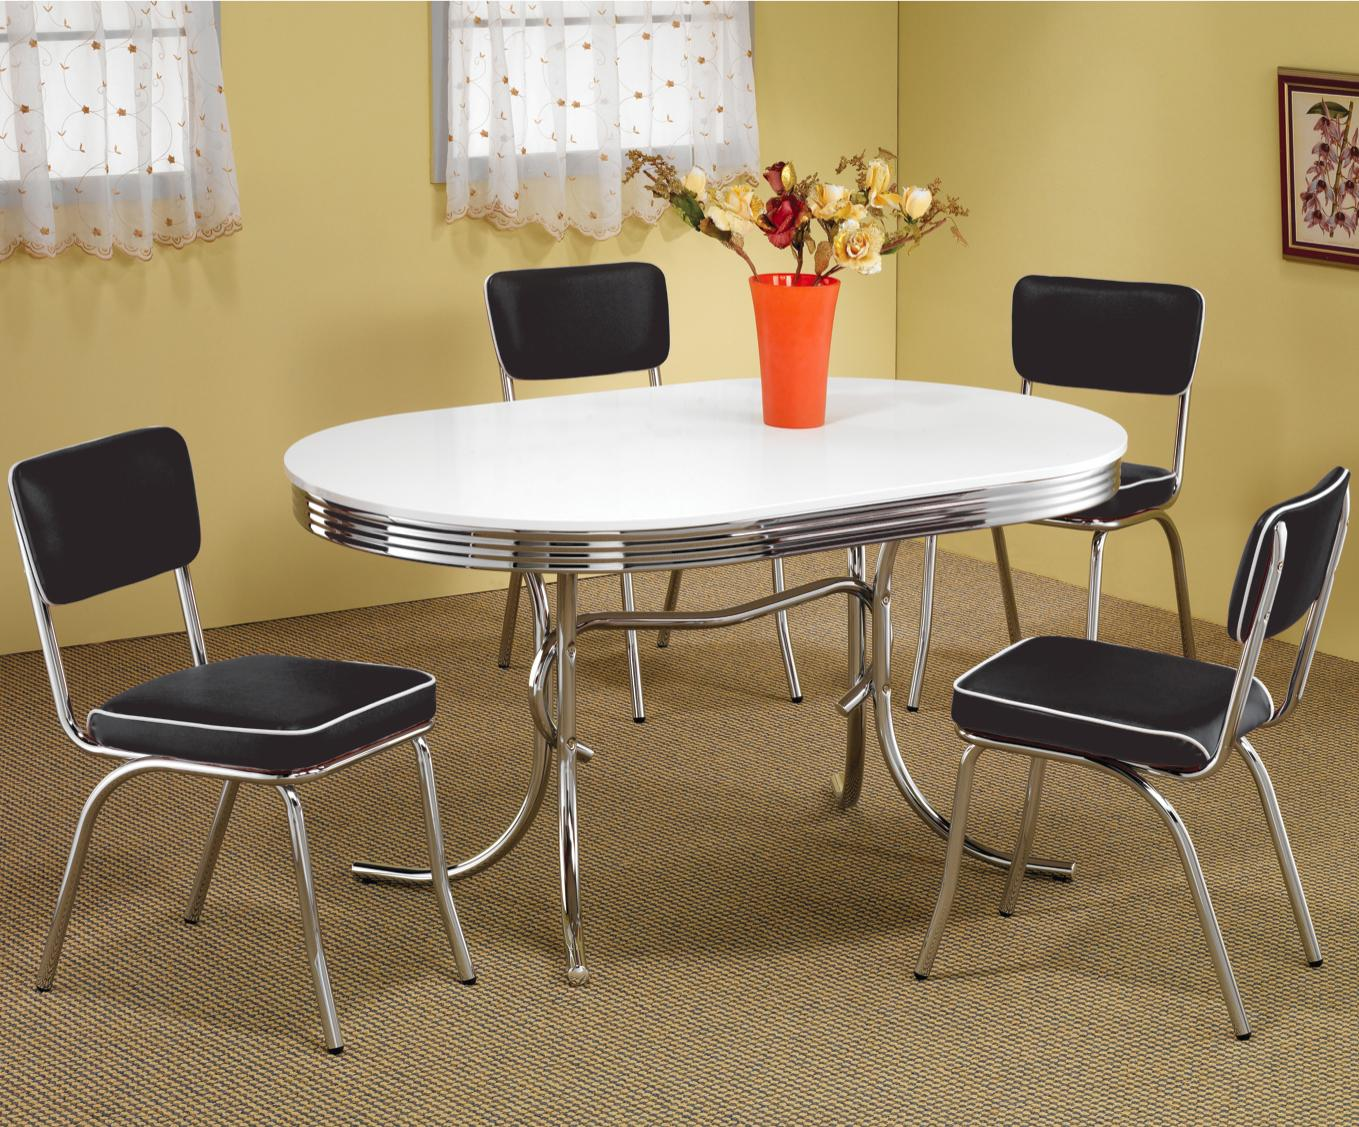 Coaster cleveland 2065 oval dining table northeast factory direct kitchen tables cleveland eastlake westlake mentor medina ohio